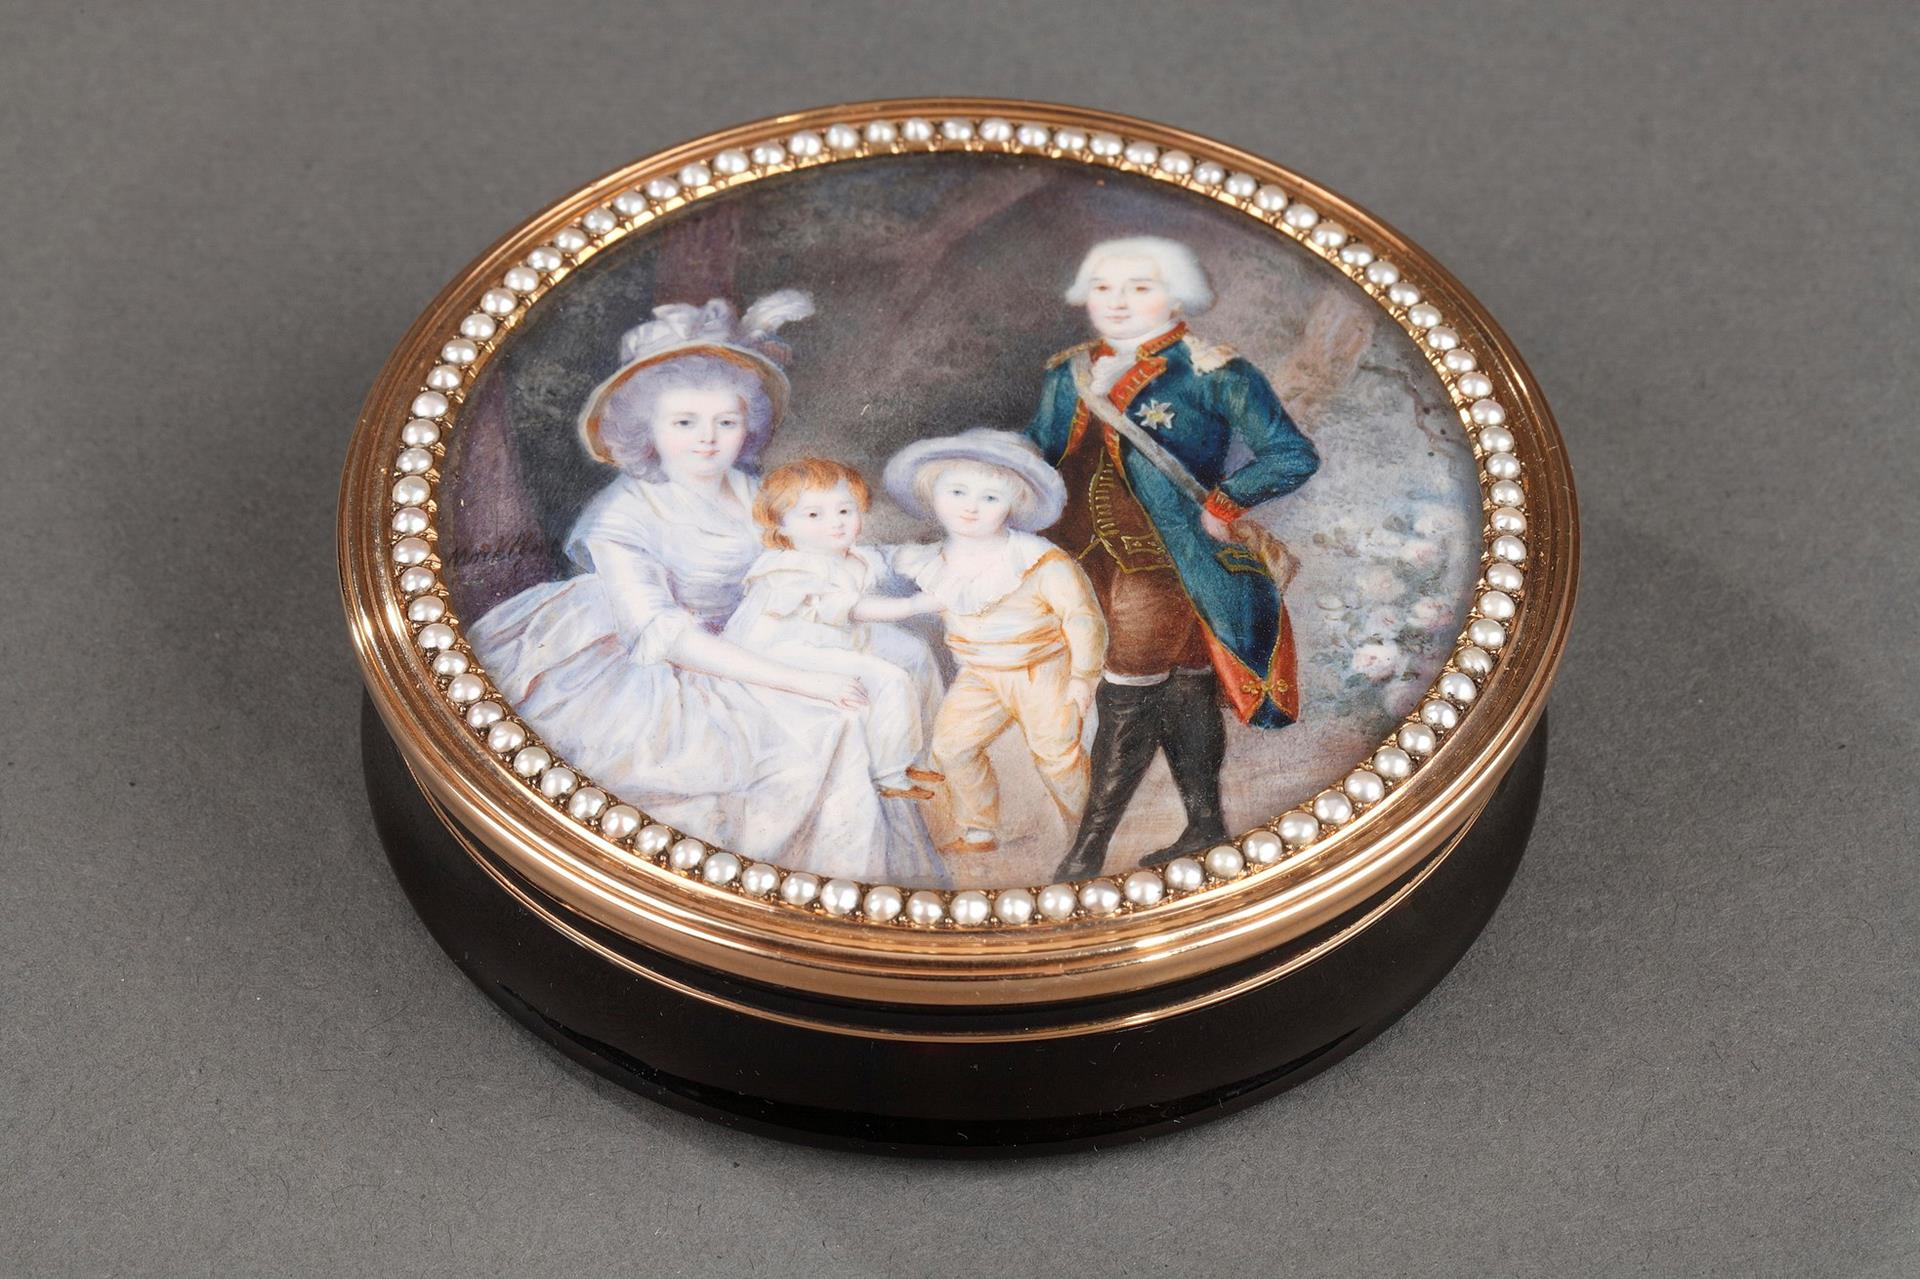 Gold and tortoiseshell box with miniature signed Morel.<br/> 18th century.